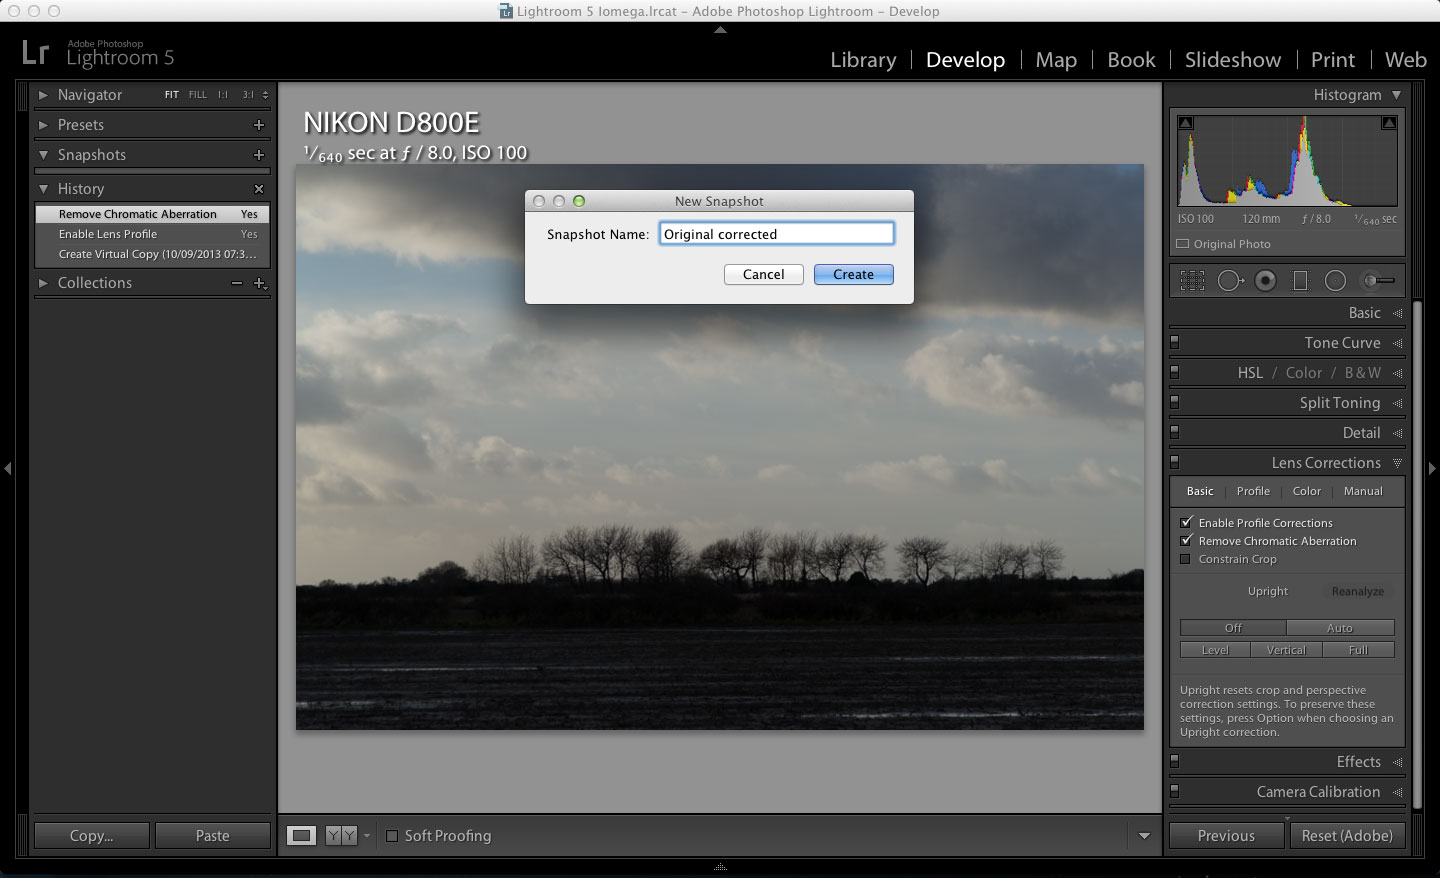 Lightroom Snapshot and History tools